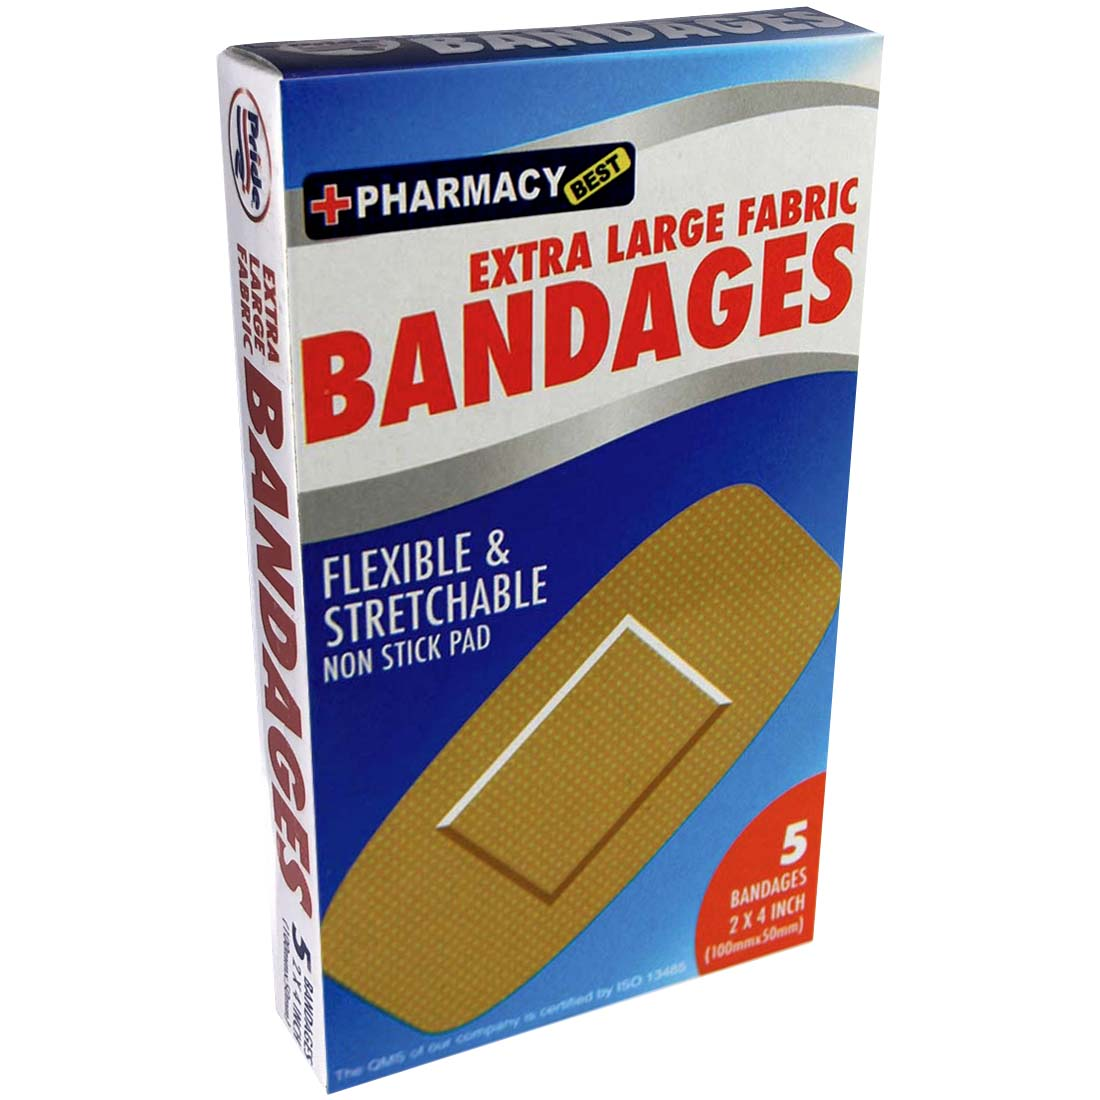 View BANDAGES 5 COUNT 2 X 4 INCH EXTRA LARGE FLEXIBLE FABRIC